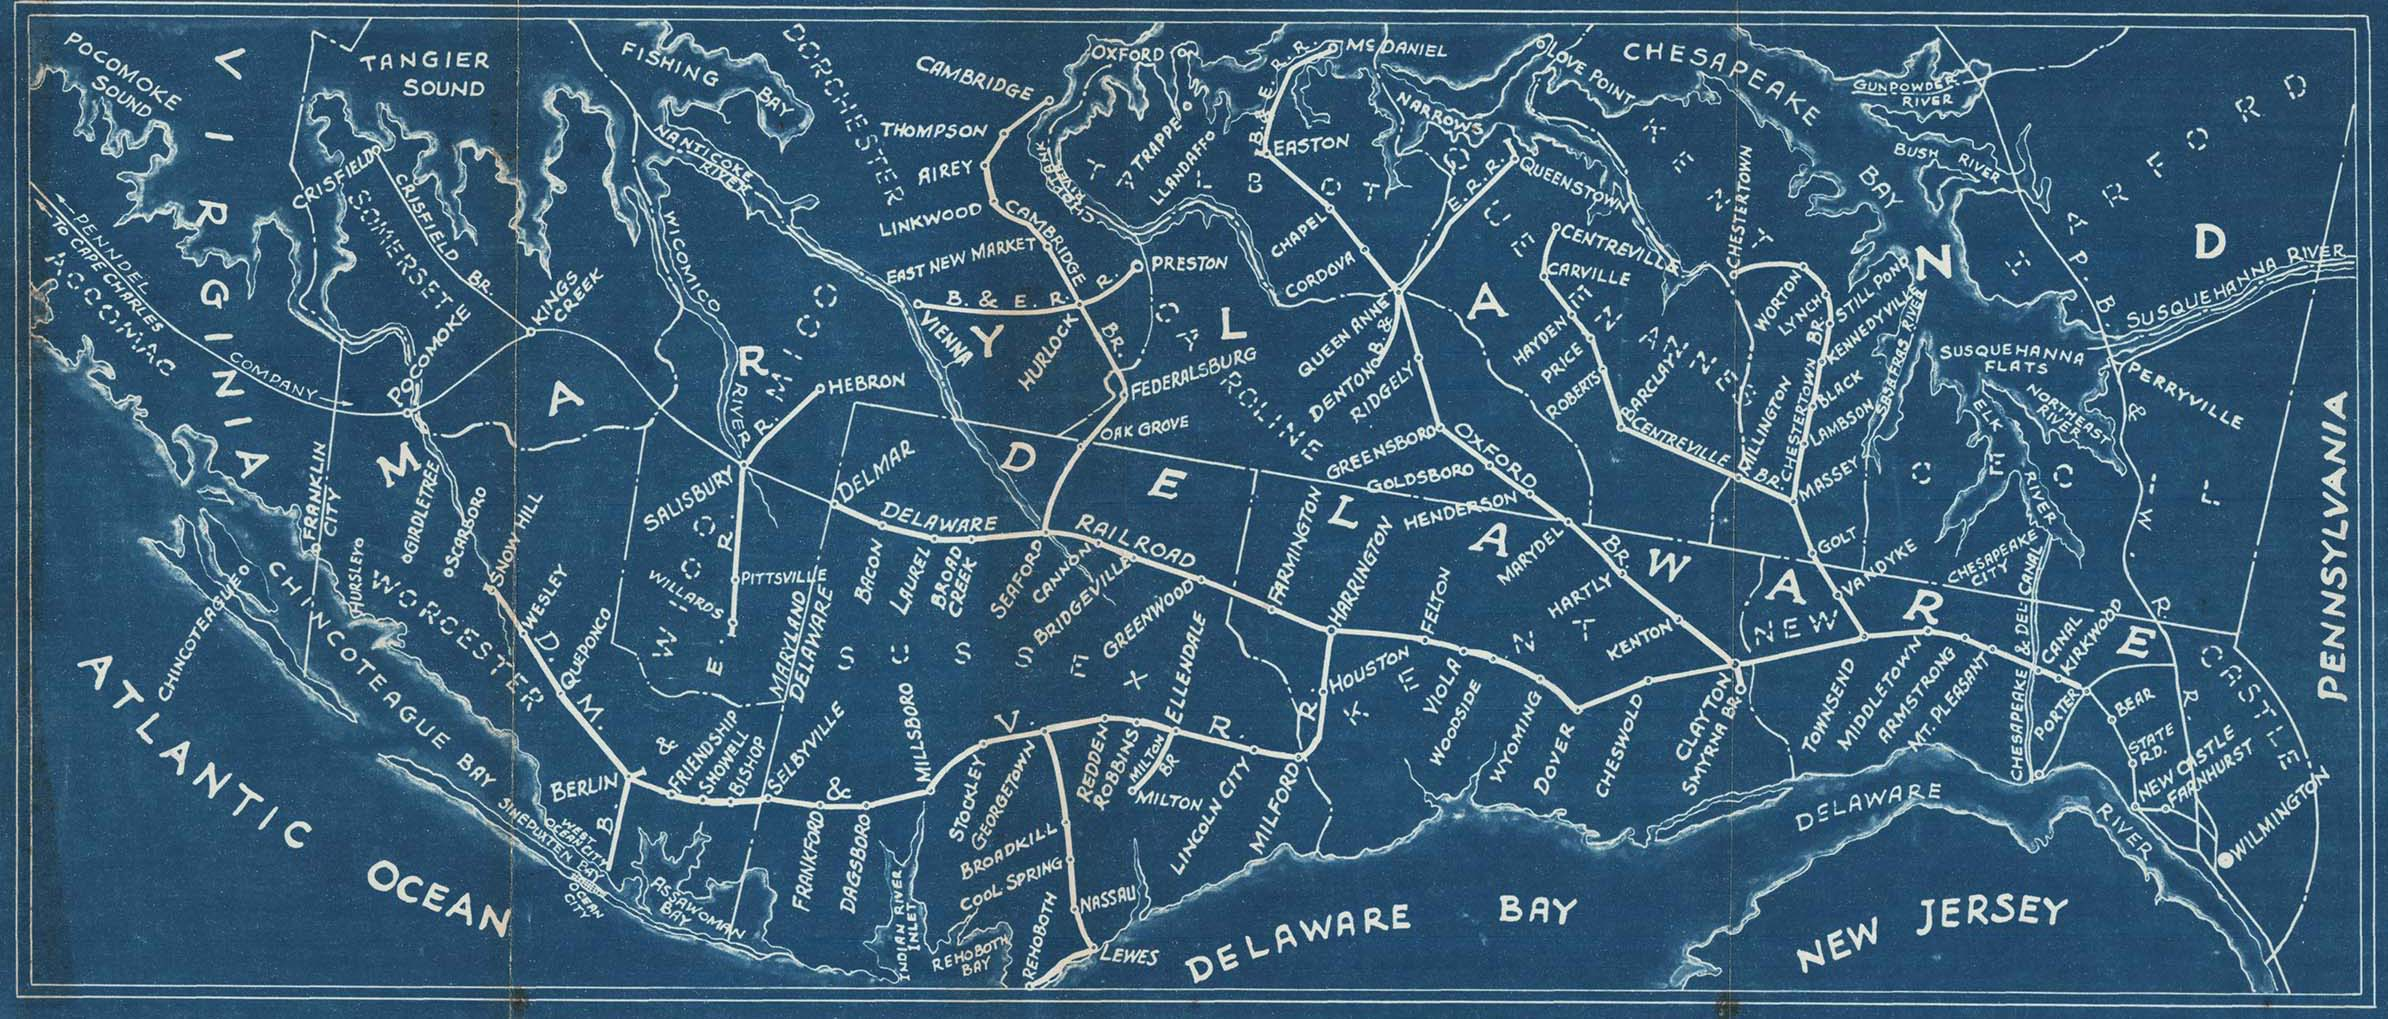 PRR Chesapeake Region Delmarva District on virginia peninsula, adirondack high peaks map, dominion power service area map, rehoboth beach, delaware map, california shipwreck map, virginia map, northeast us road map, indian river, dewey beach, bethany beach neighborhood map, cape henlopen, olde england map, west va map, east coast map, long island map, state of deseret, gloucester county va map, sussex county, delaware bay, bethany beach, district of columbia statehood movement, middle peninsula, mexico yucatan peninsula map, georgetown de map, new orleans map, md beaches map, lake county map, dc area and surrounding area map, 51st state, maryland map, state of franklin,